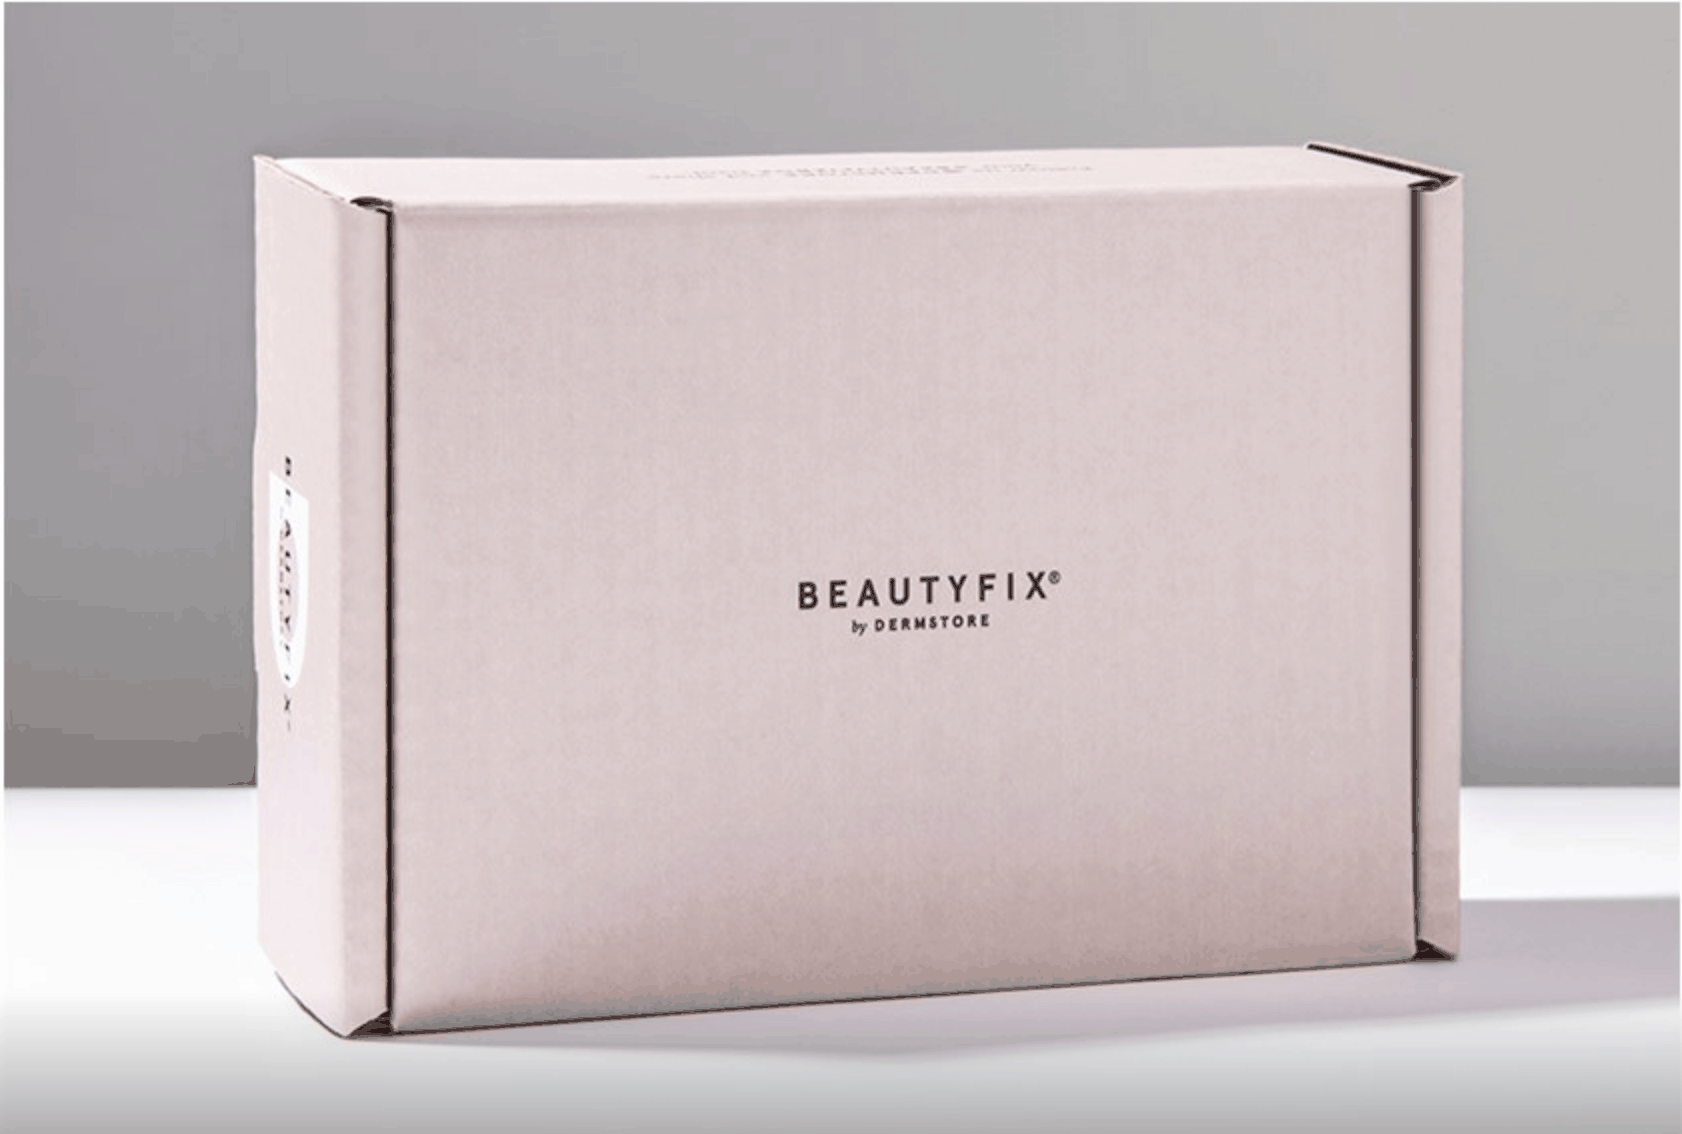 BeautyFIX October 2019 Full Spoilers!